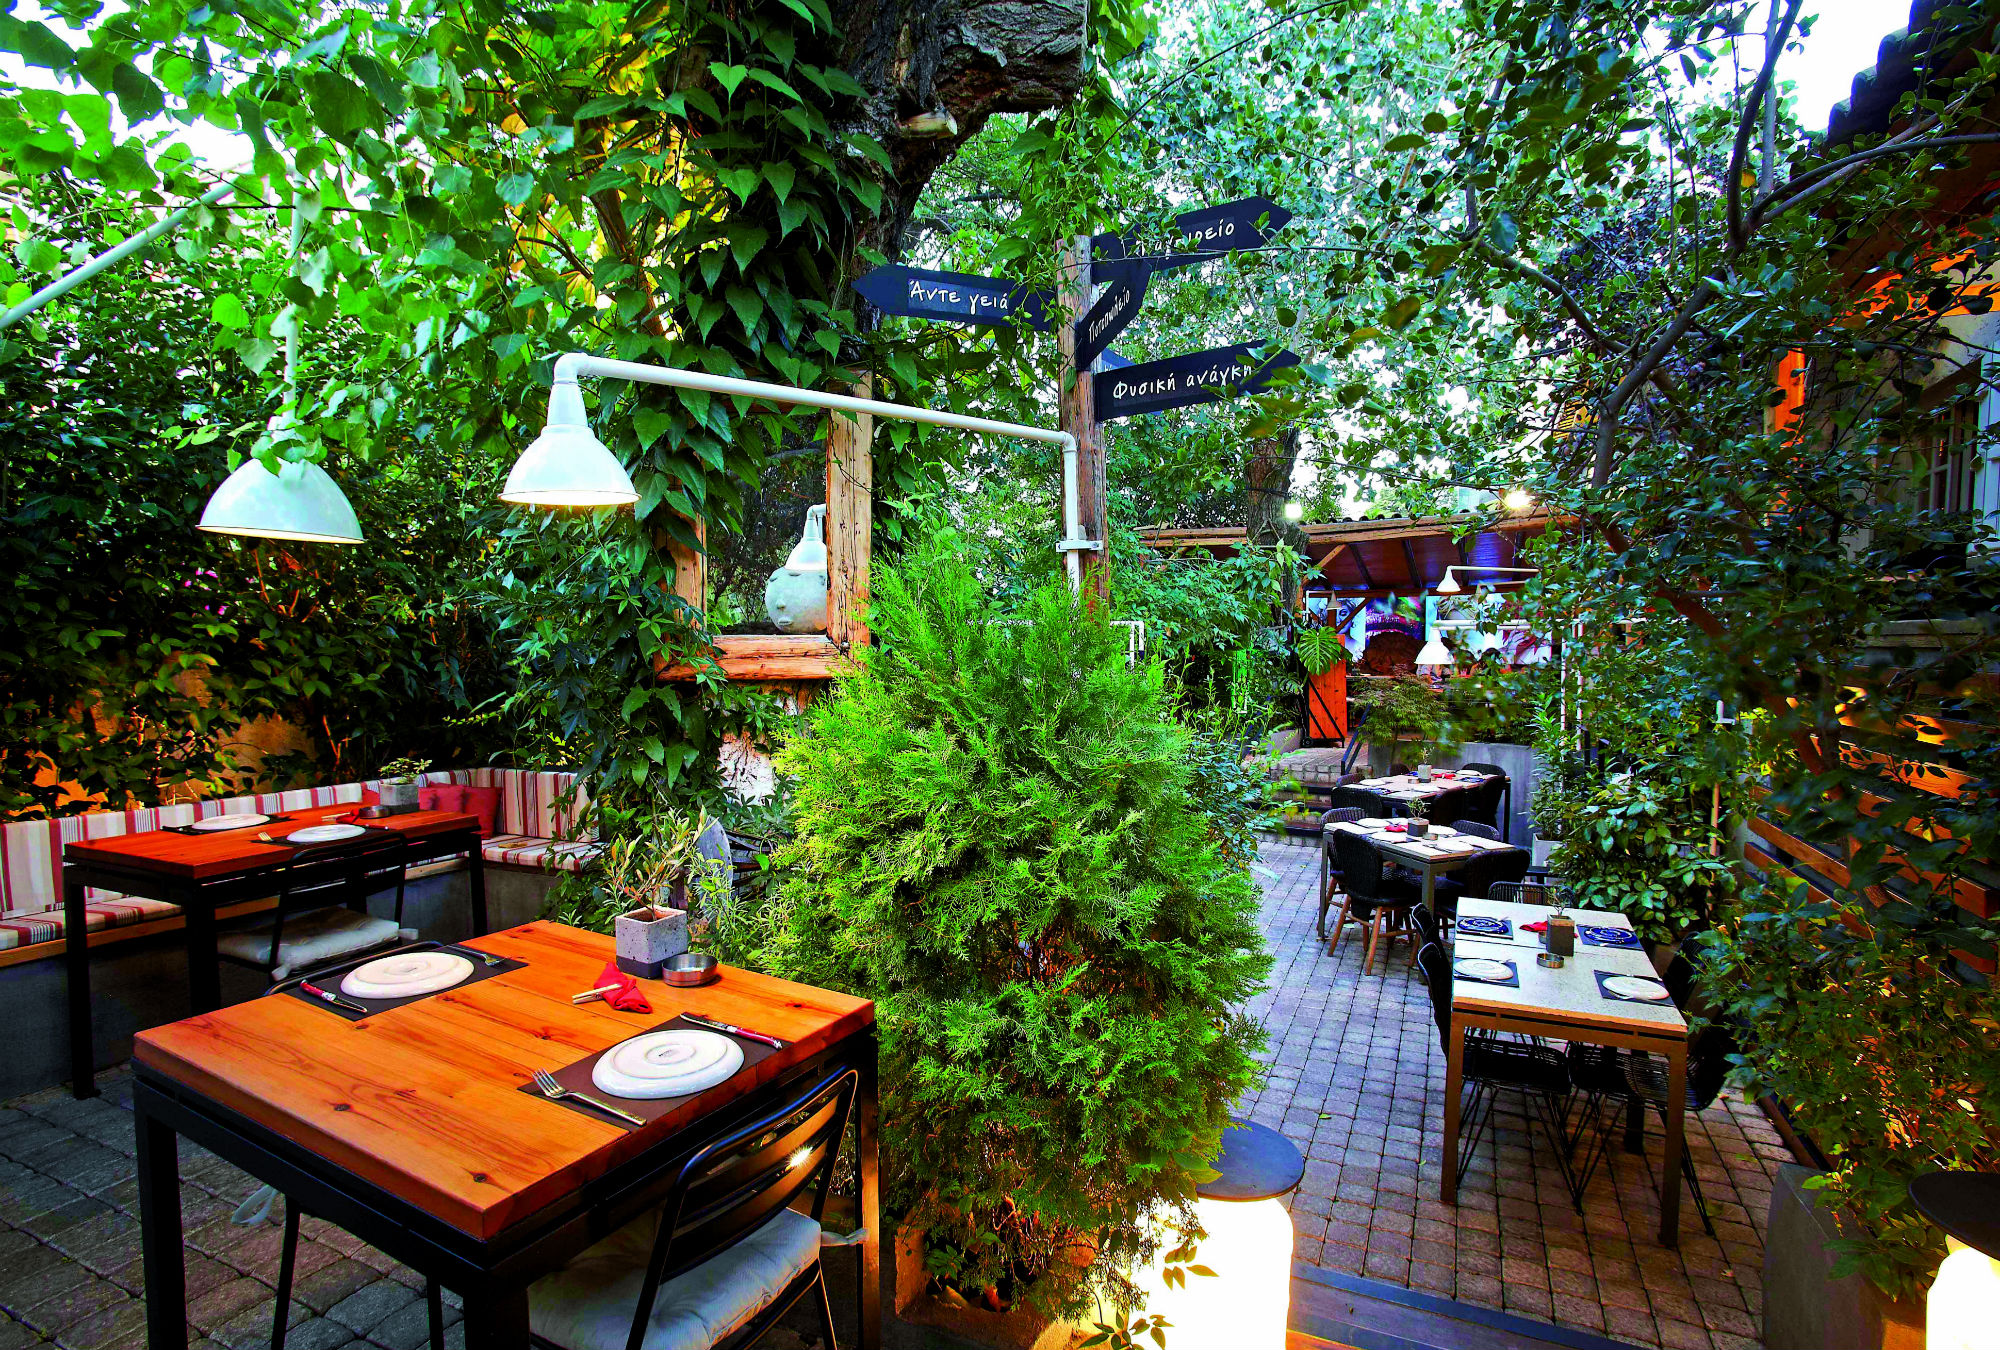 Lefkes Five cool summer yards for dining in Athens